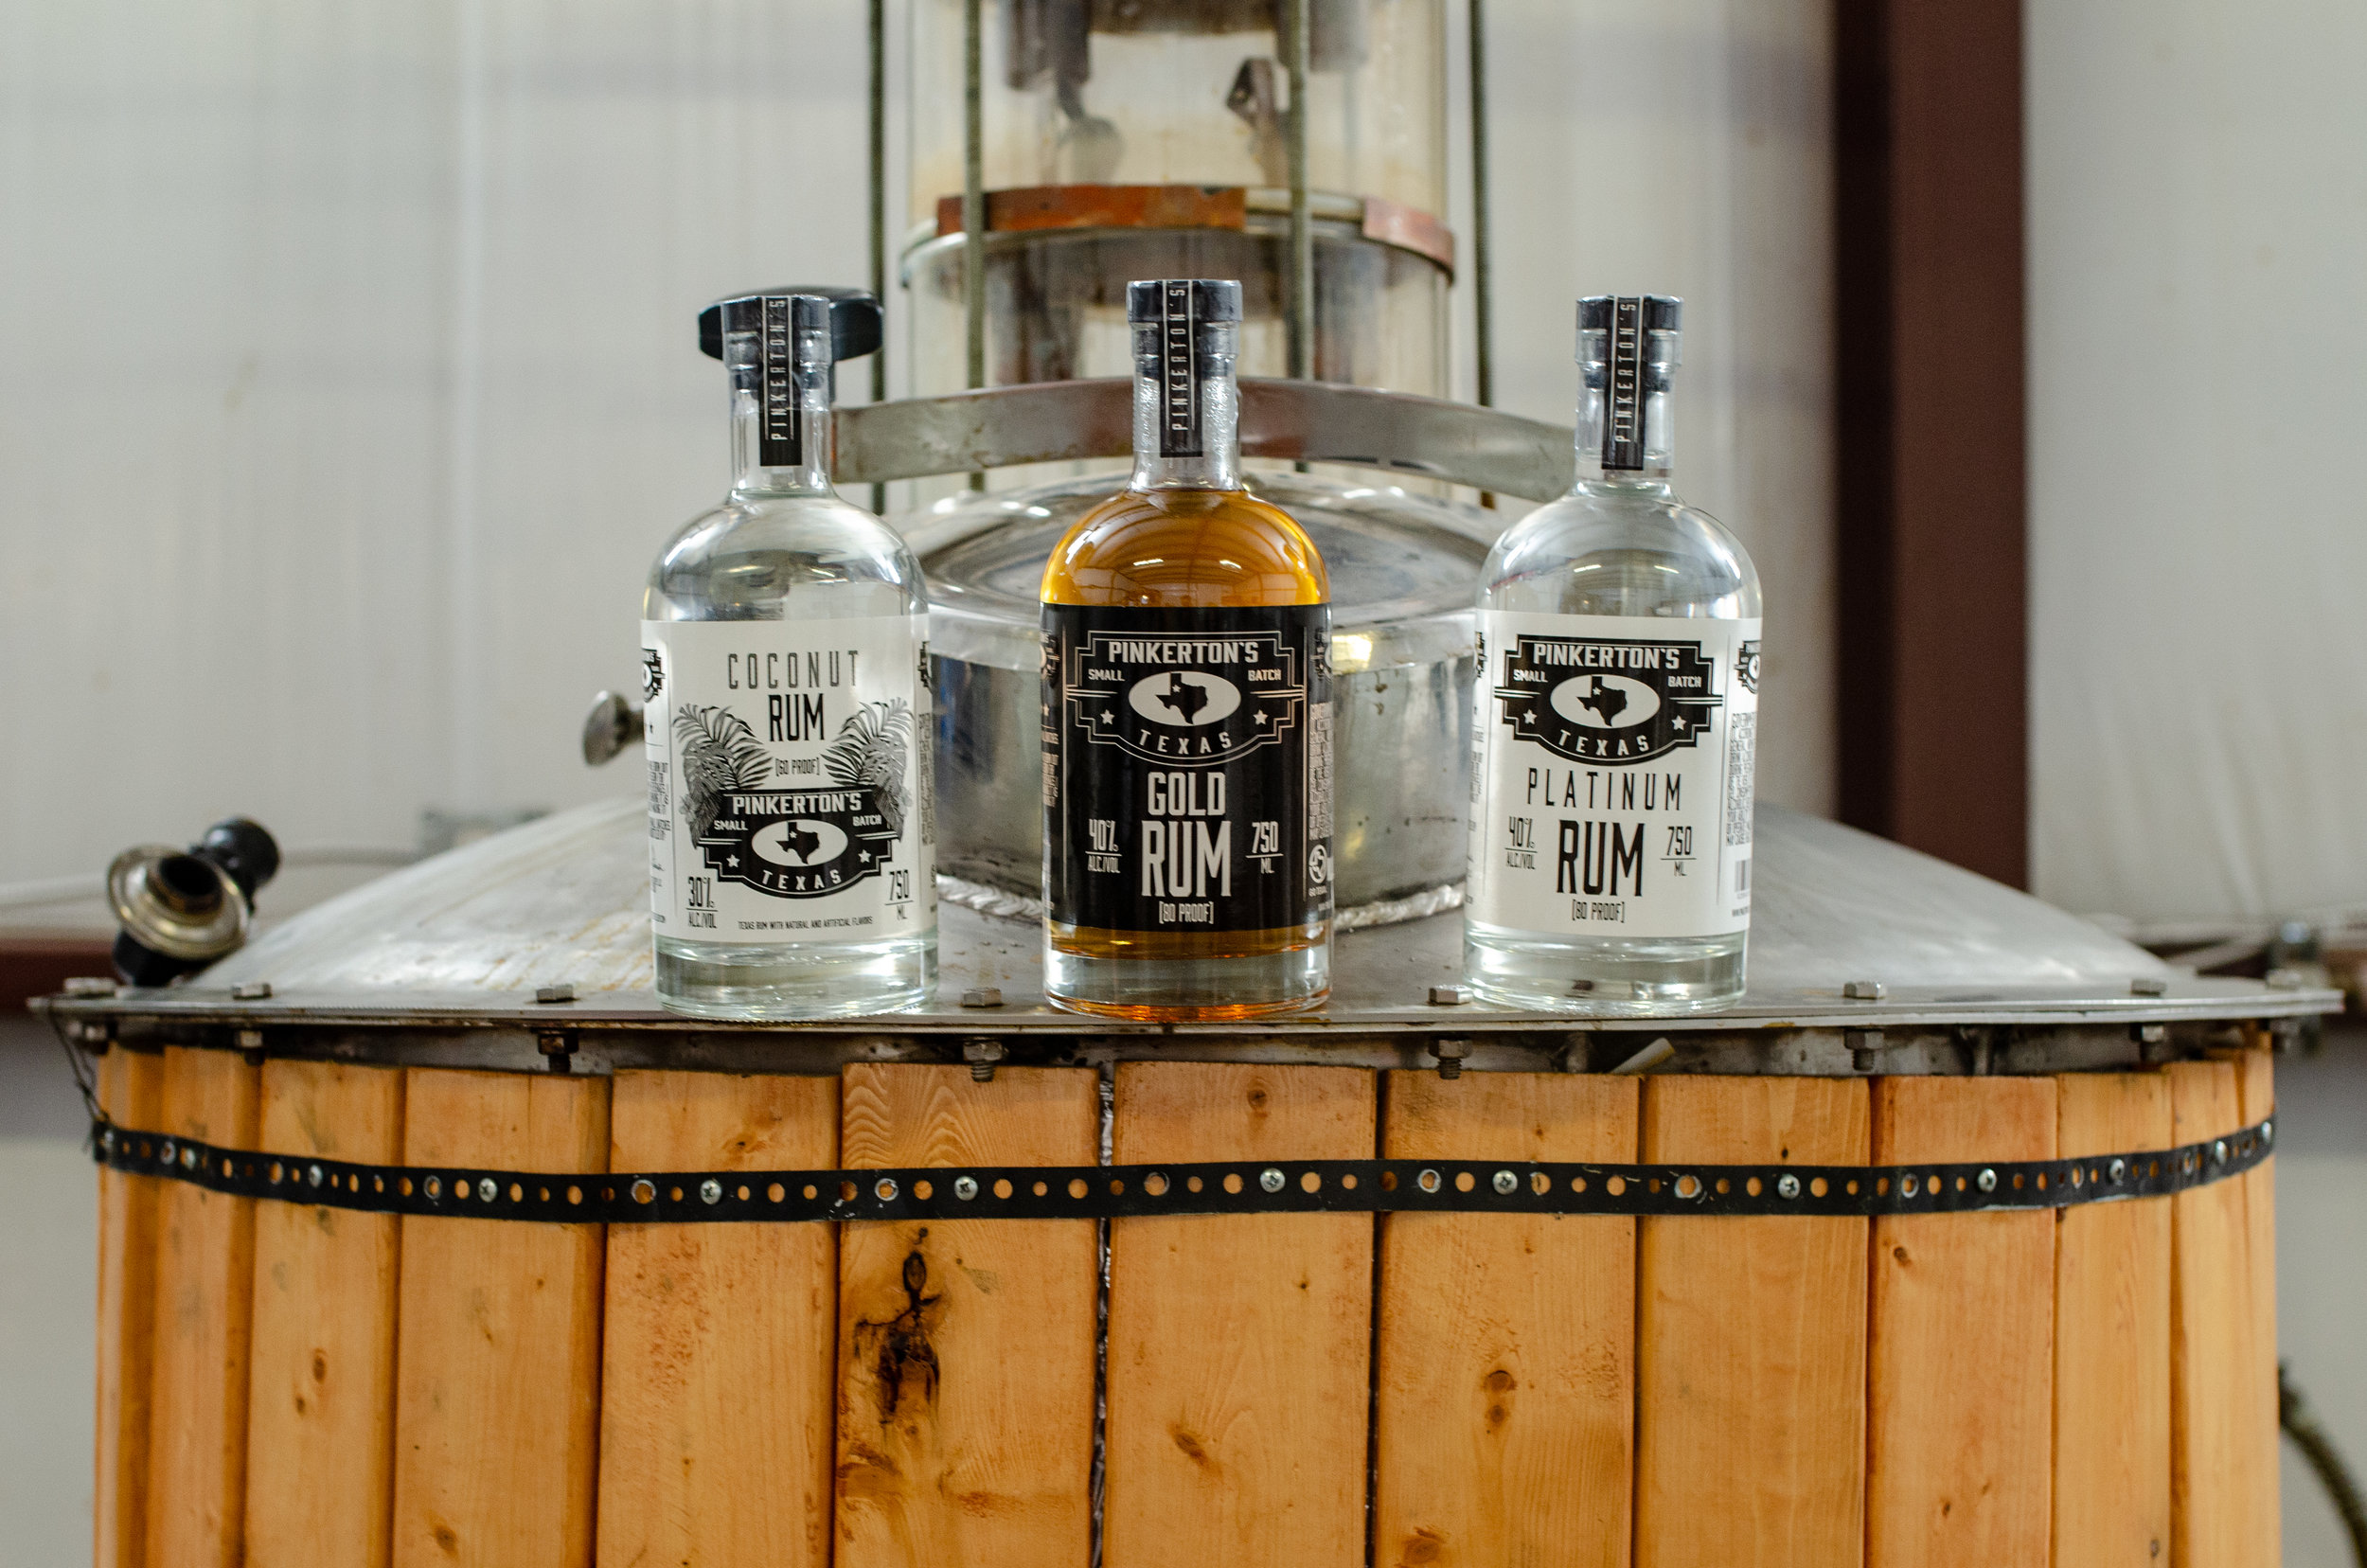 Store info - Phone: 806-470-1553,Location: 8901 Hwy 87 #123Website: www.pinkertonsdistillery.comSocial:FacebookInstagramHours:Free tours the first and third Saturdays of the month from 1-4pm.